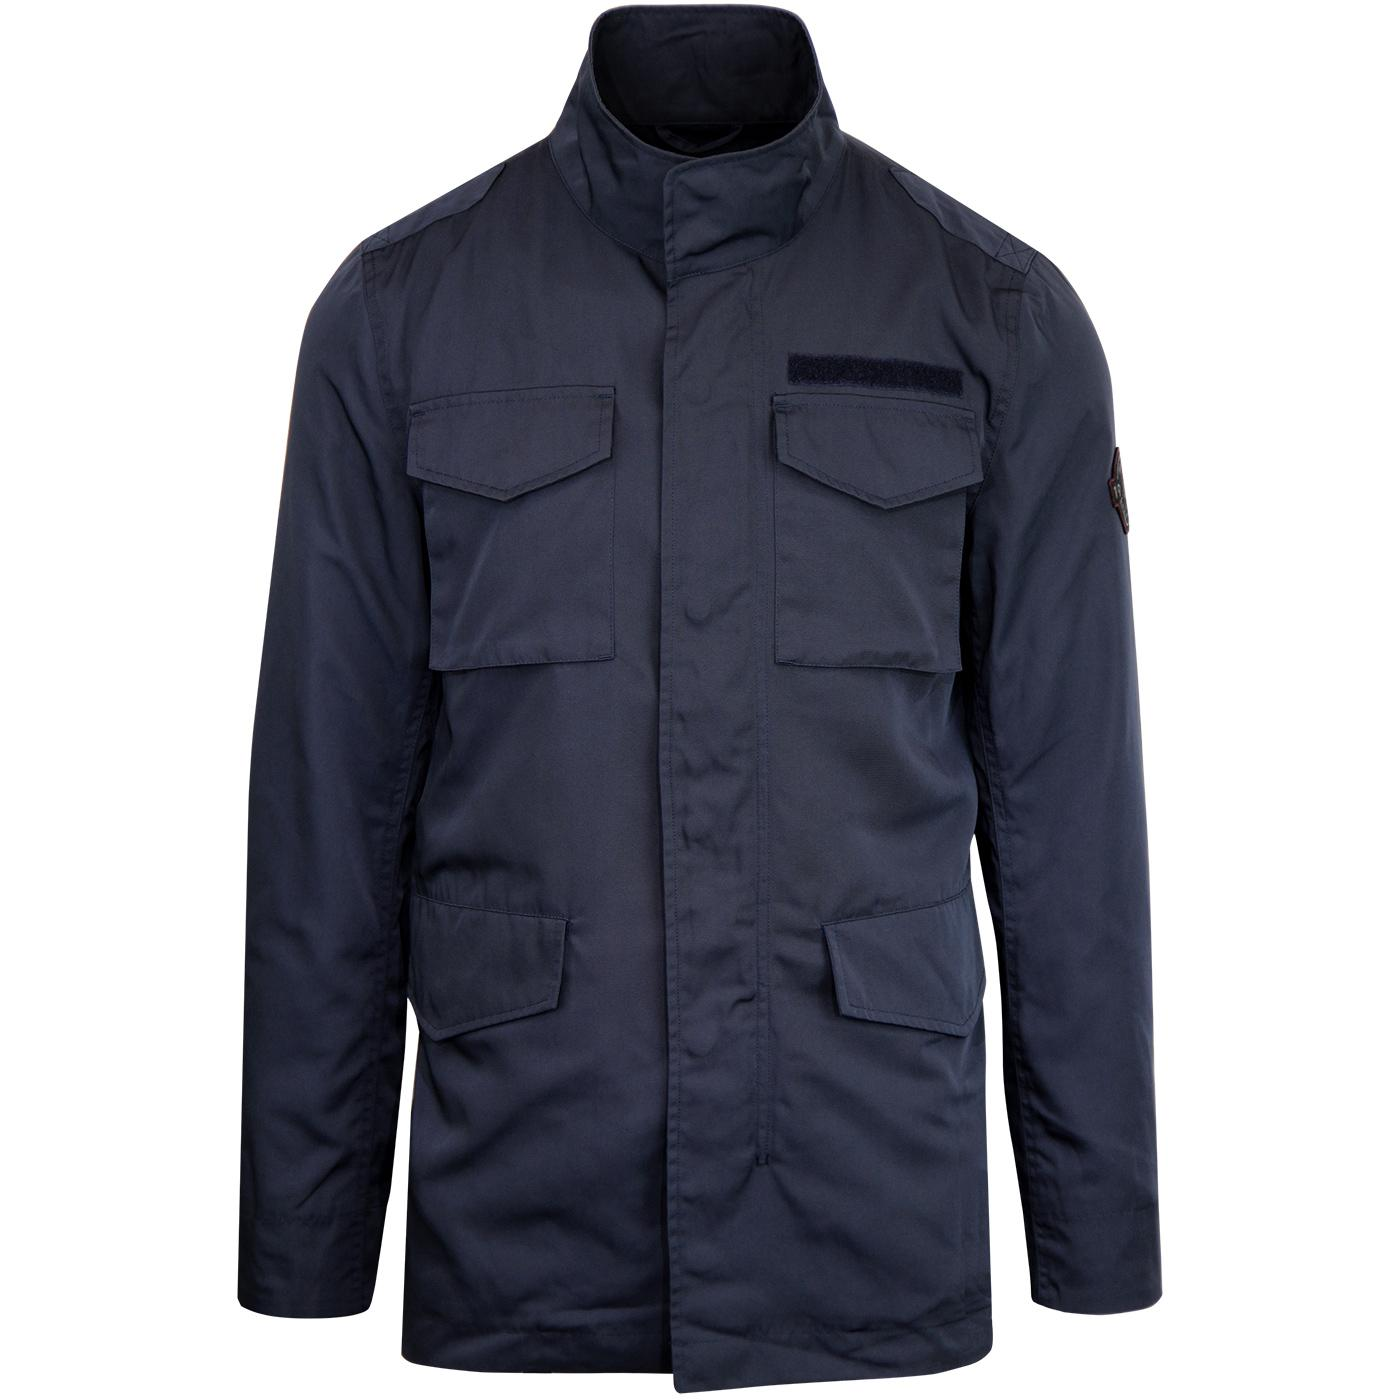 Woodford MERC Men's Retro Mod Field Jacket (Navy)